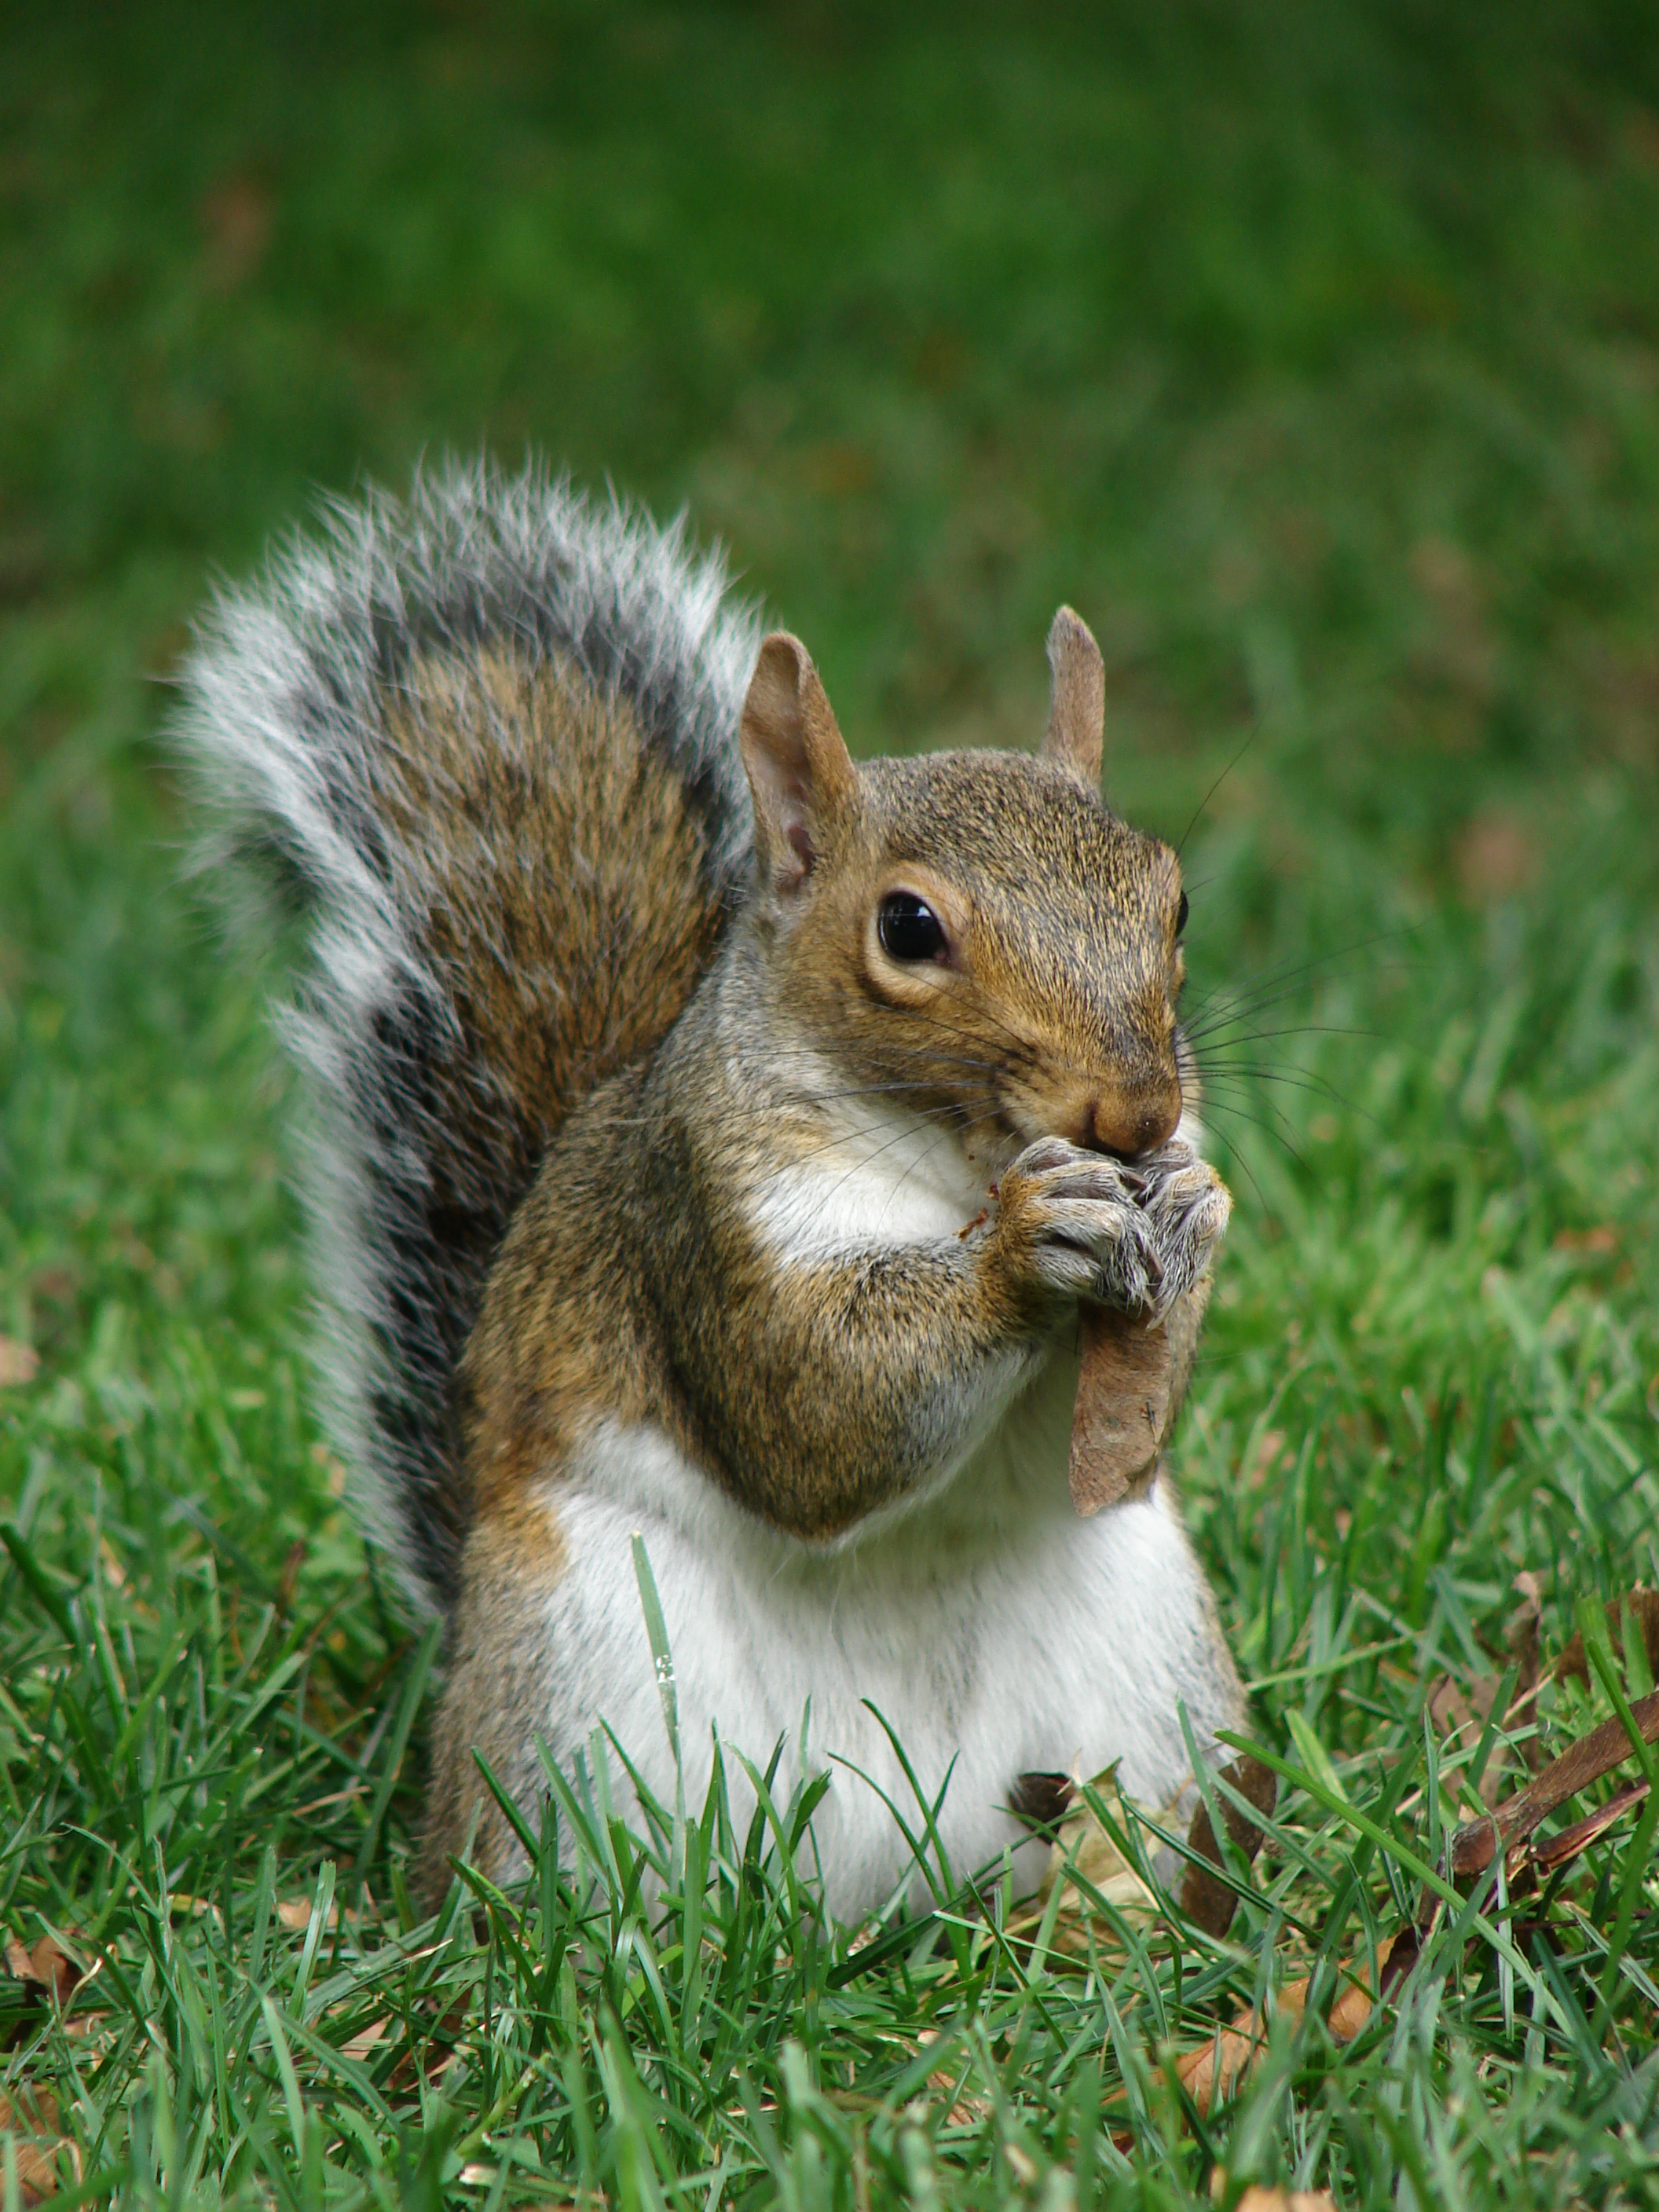 https://upload.wikimedia.org/wikipedia/commons/3/36/Gray_squirrel_(Sciurus_carolinensis)_in_Boston_Public_Garden_September_2010.jpg